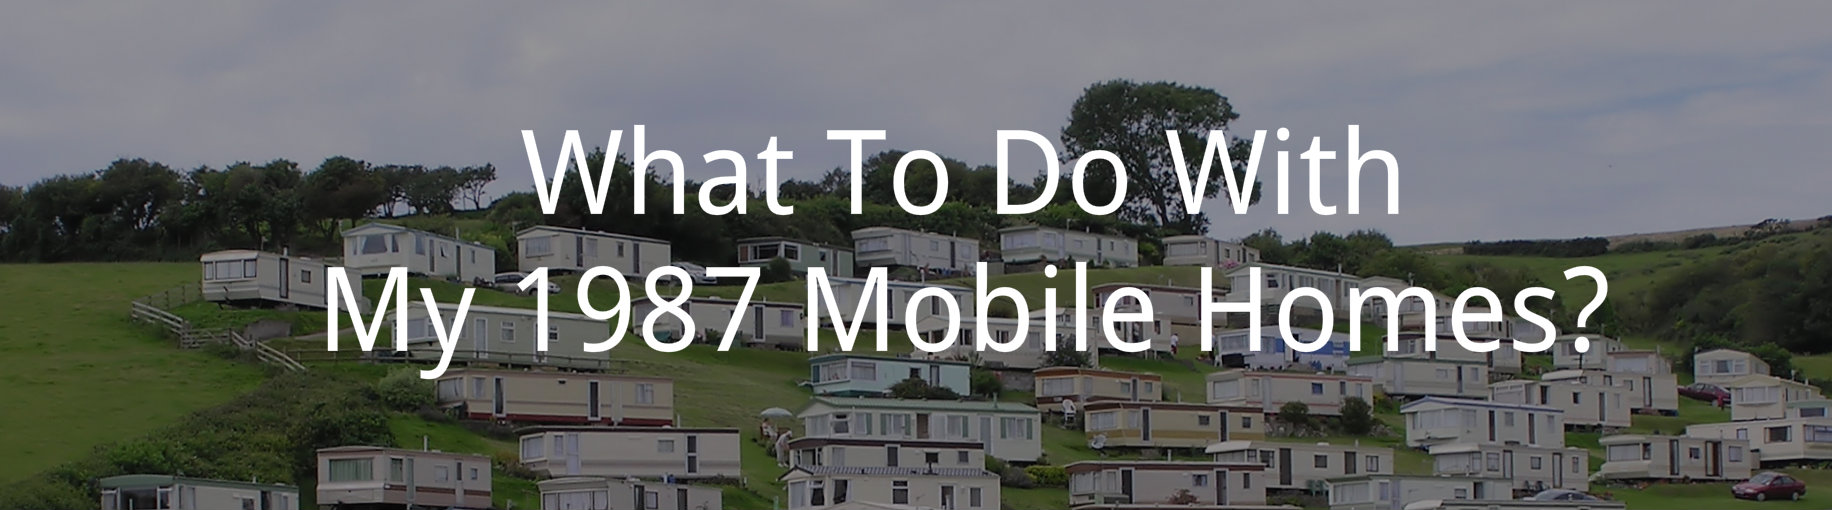 How much is a 1987 mobile home worth? - US Mobile Home Pros Zimmer Mobile Home on smart mobile home, white mobile home, volkswagen mobile home, bmw mobile home, graham mobile home, kelly mobile home, anderson mobile home, 1971 mobile home, spartan mobile home, nelson mobile home, brown mobile home, detroiter mobile home, bentley mobile home, mini mobile home, tiffany mobile home, ford mobile home, 1980 mobile home, lamborghini mobile home, 1960s mobile home, toyota mobile home,